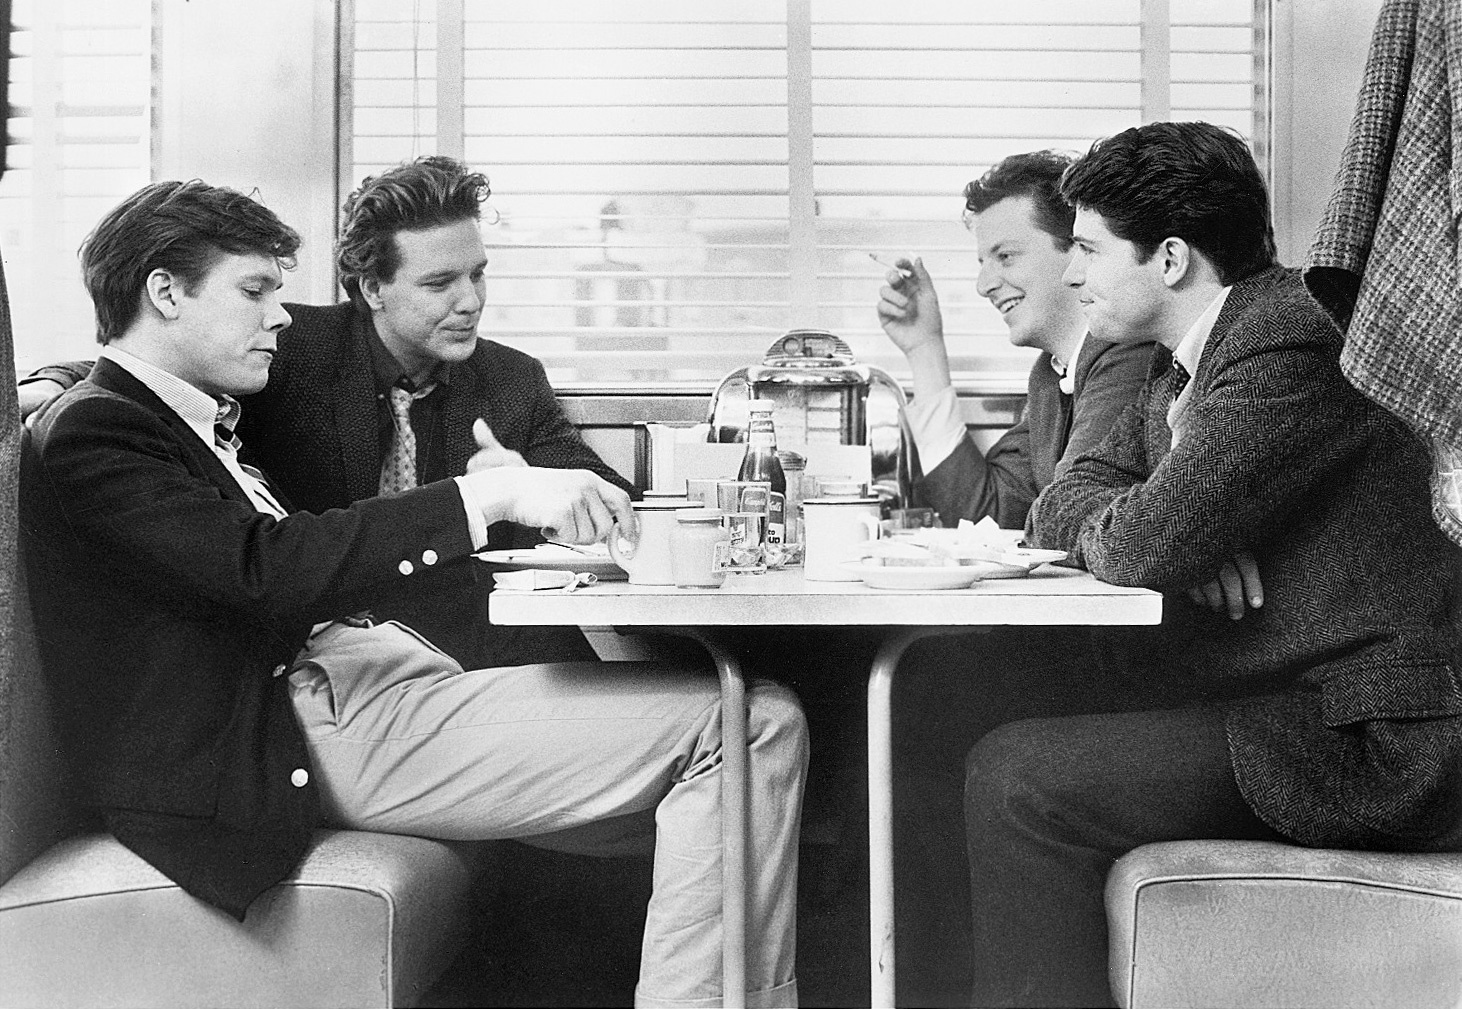 Diner. 1982. USA. Written and directed by Barry Levinson